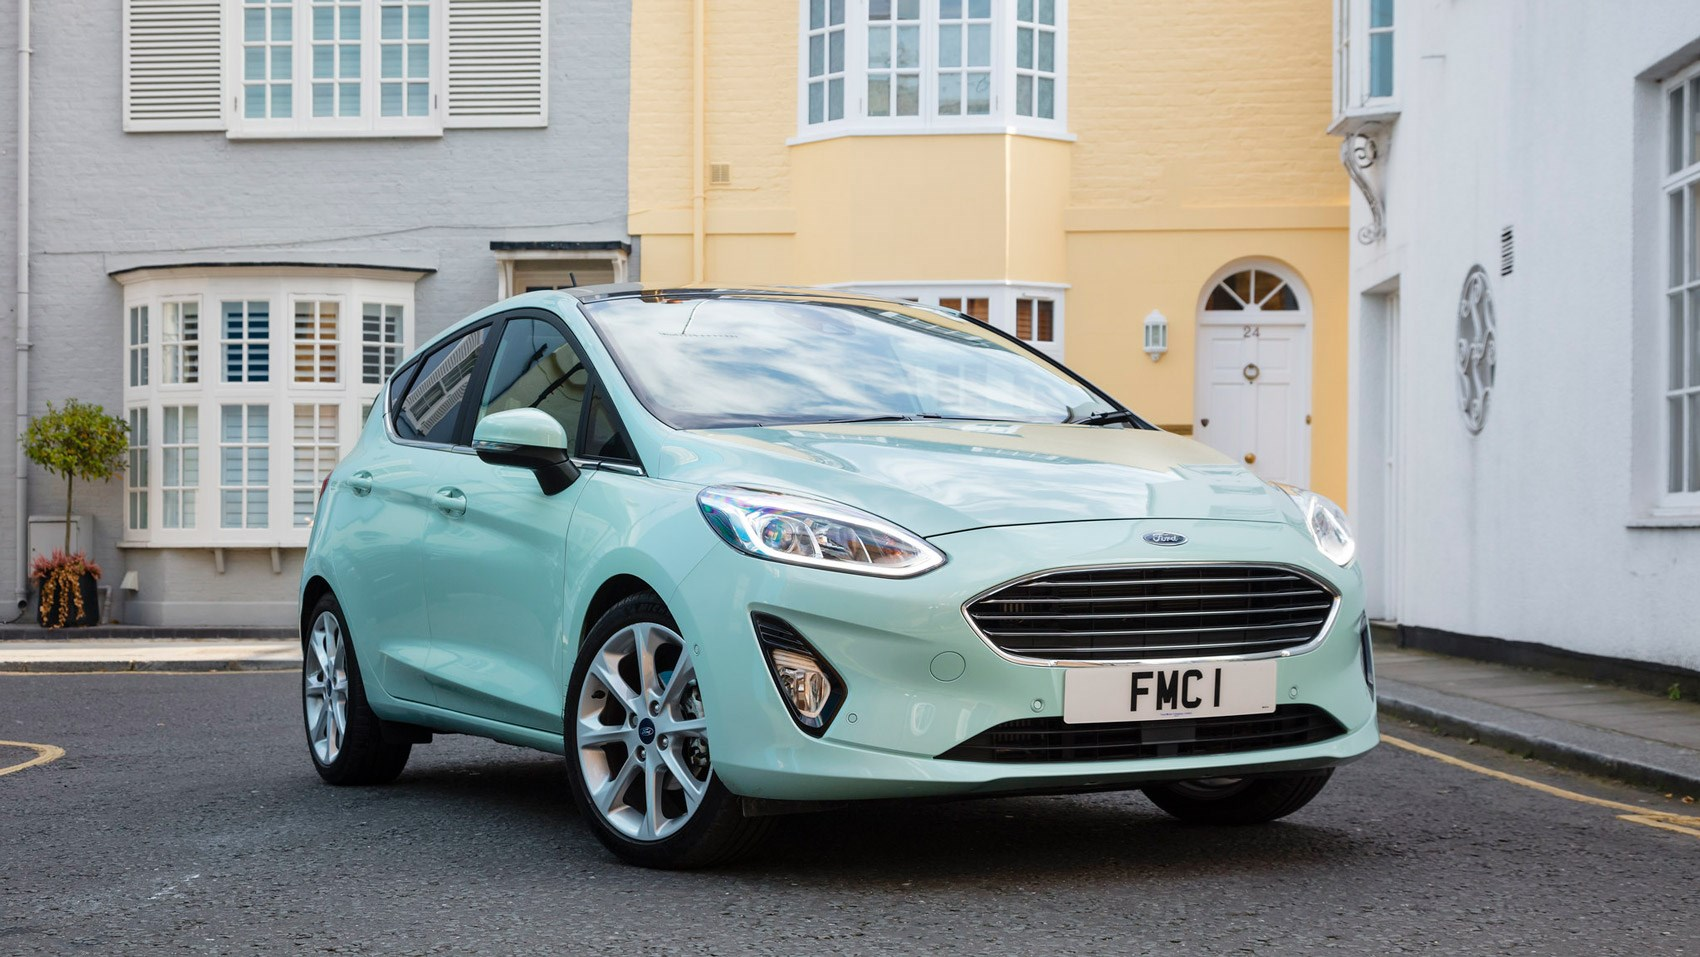 ford fiesta 109 - Ford Fiesta (2020) evaluation: supermini supremo